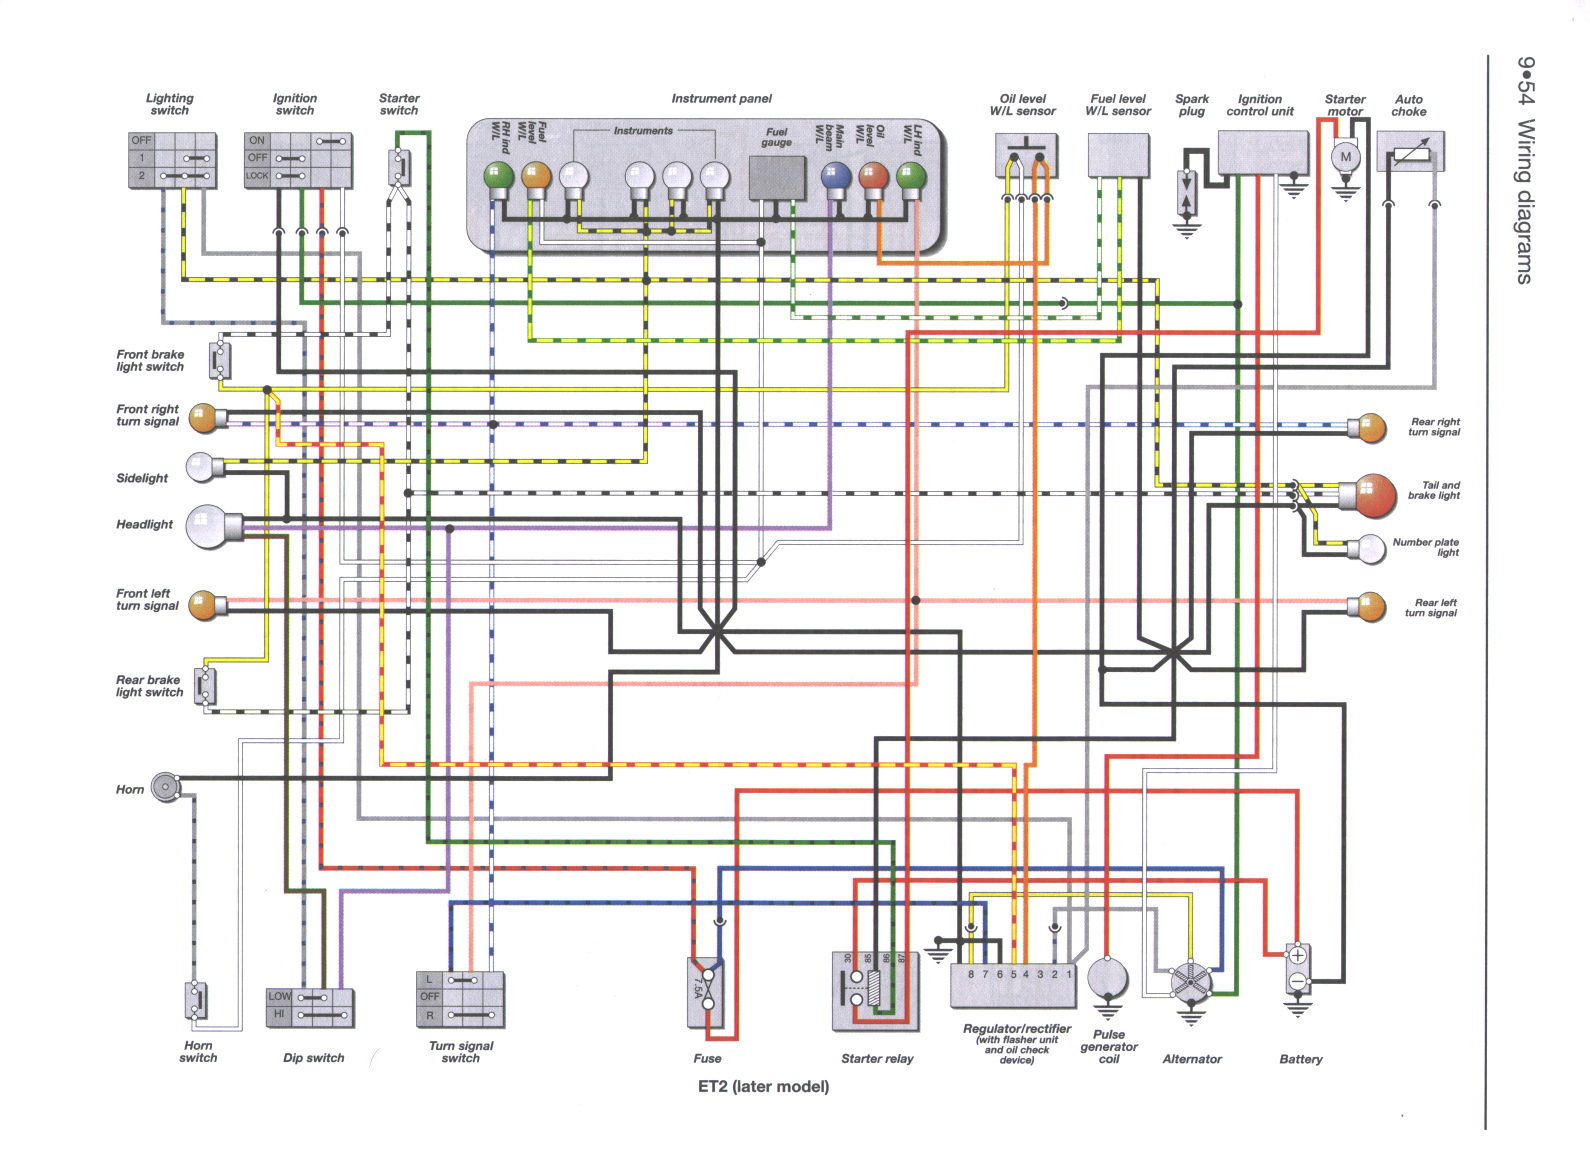 Vespa Et2 Wiring Diagram Free Download Wiring Diagrams - Wiring Diagram For Xrm 110